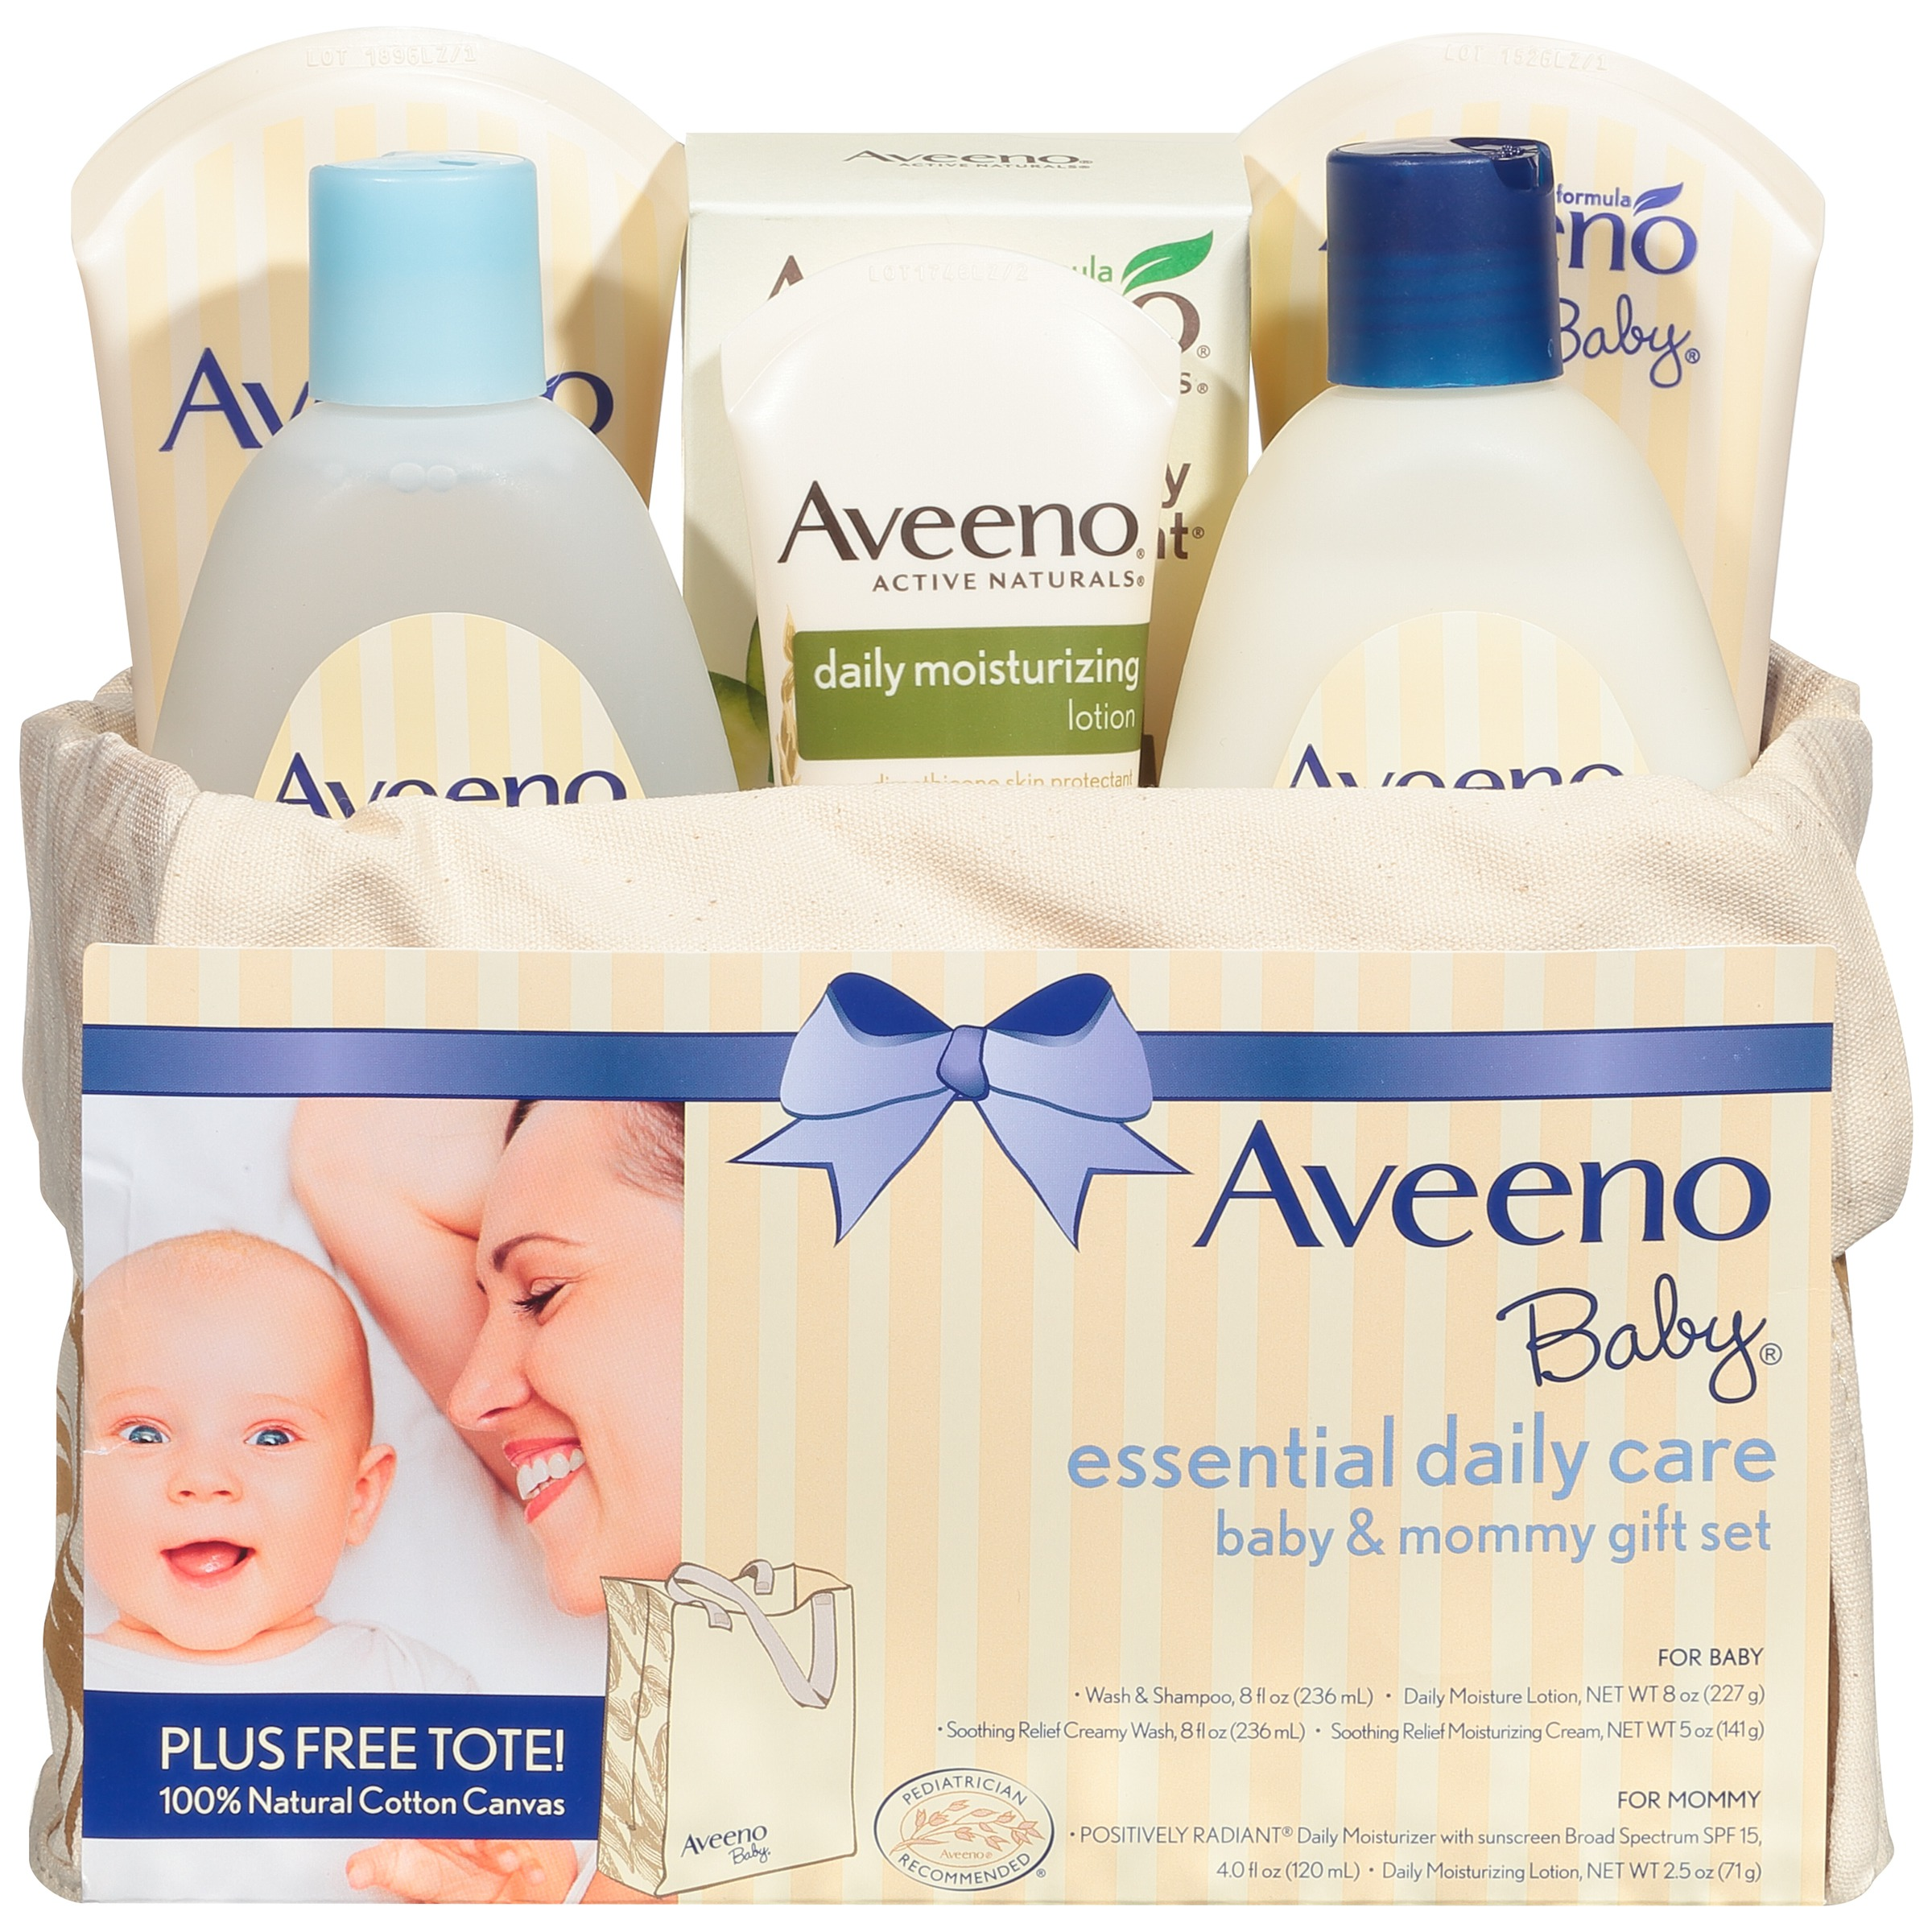 Aveeno Baby Mommy & Me Gift Set, Baby Skin Care Products by Johnson & Johnson